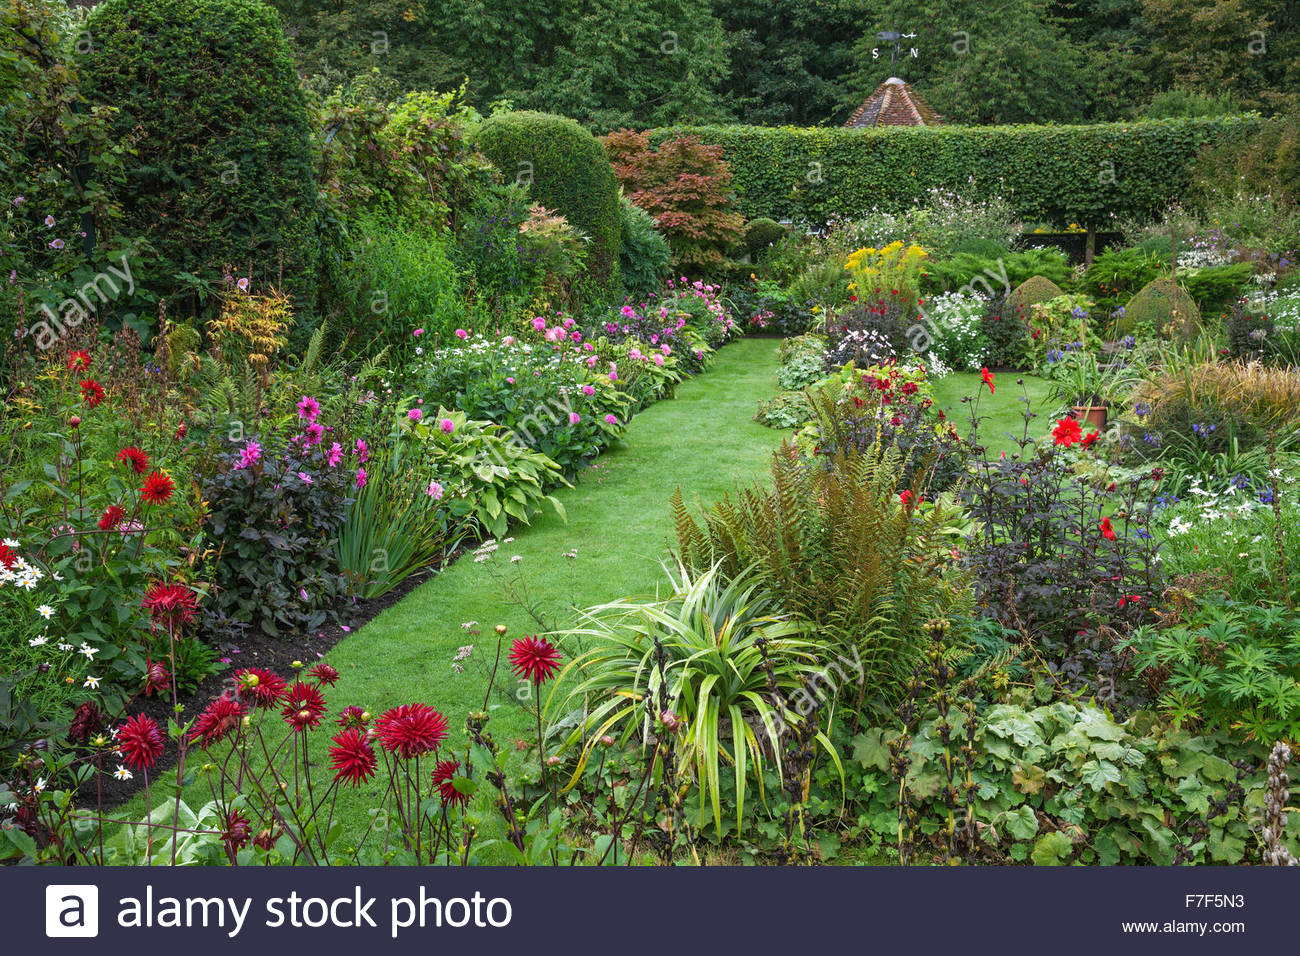 Chenies Manor Gardens - English Garden - Summer sunken Garden double borders mix of Dahlia and perennials - Stock Image